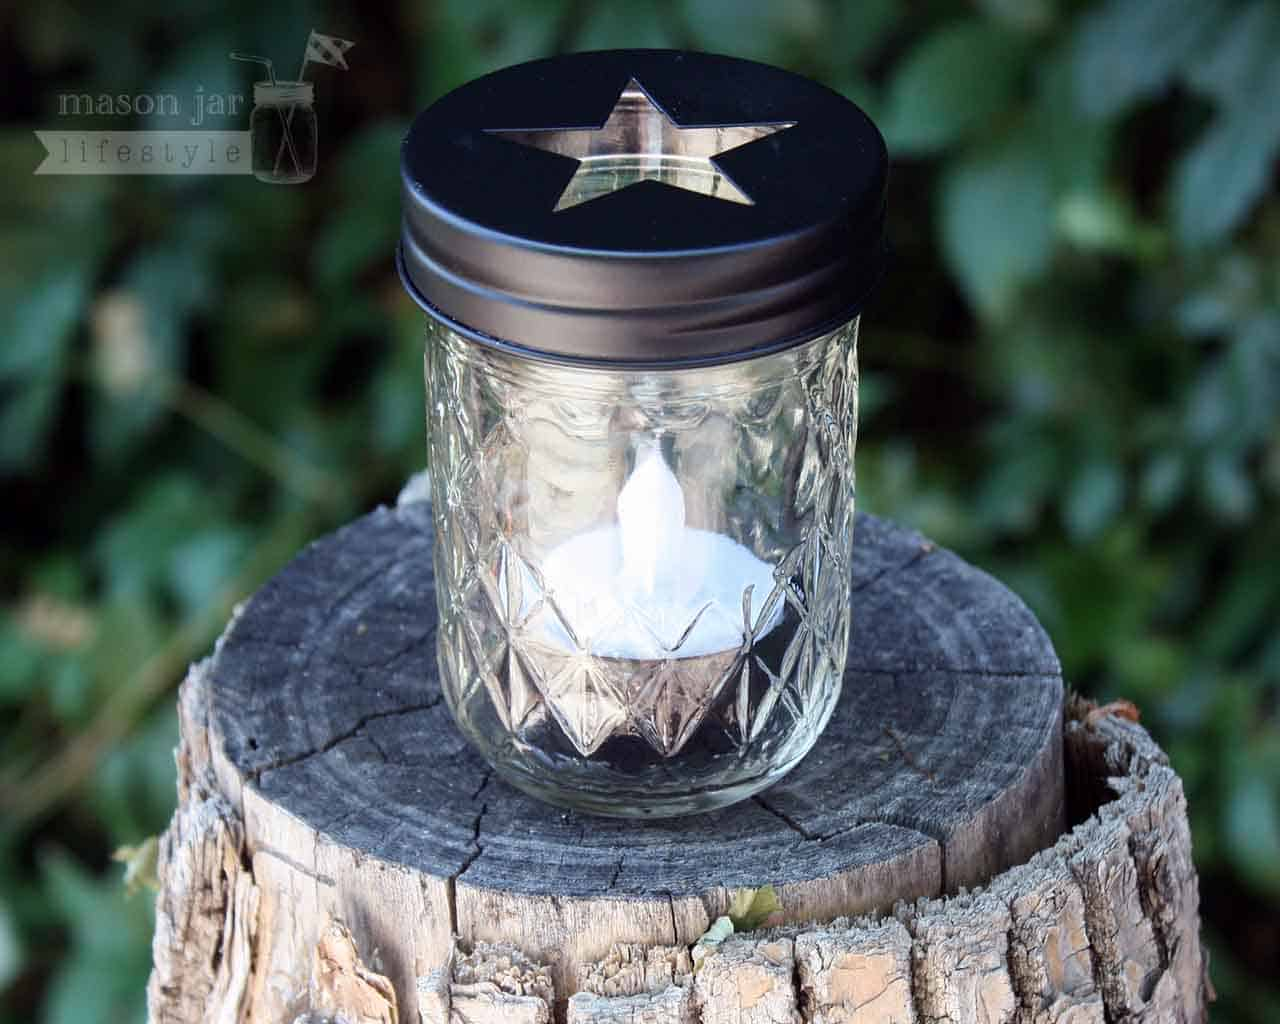 Star Cutout Tea Light Candle Holder Lid For Mason Jars